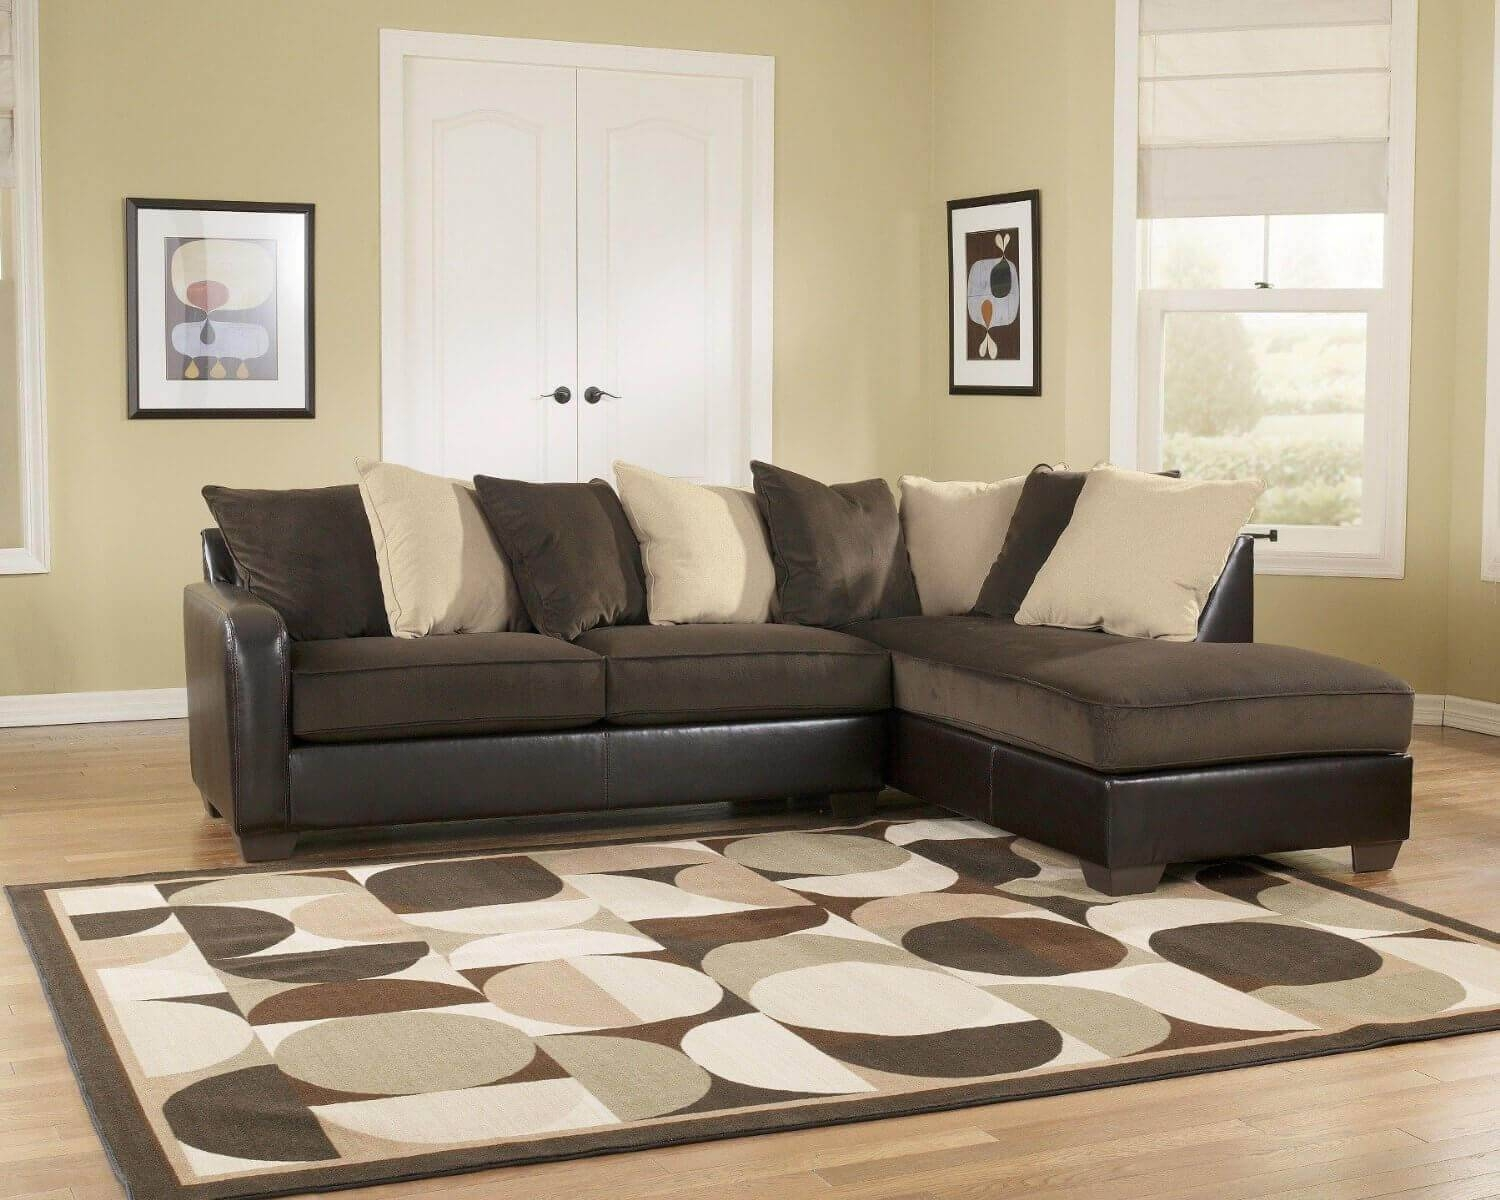 100 Beautiful Sectional Sofas Under $1,000 with Green Sectional Sofa With Chaise (Image 1 of 30)